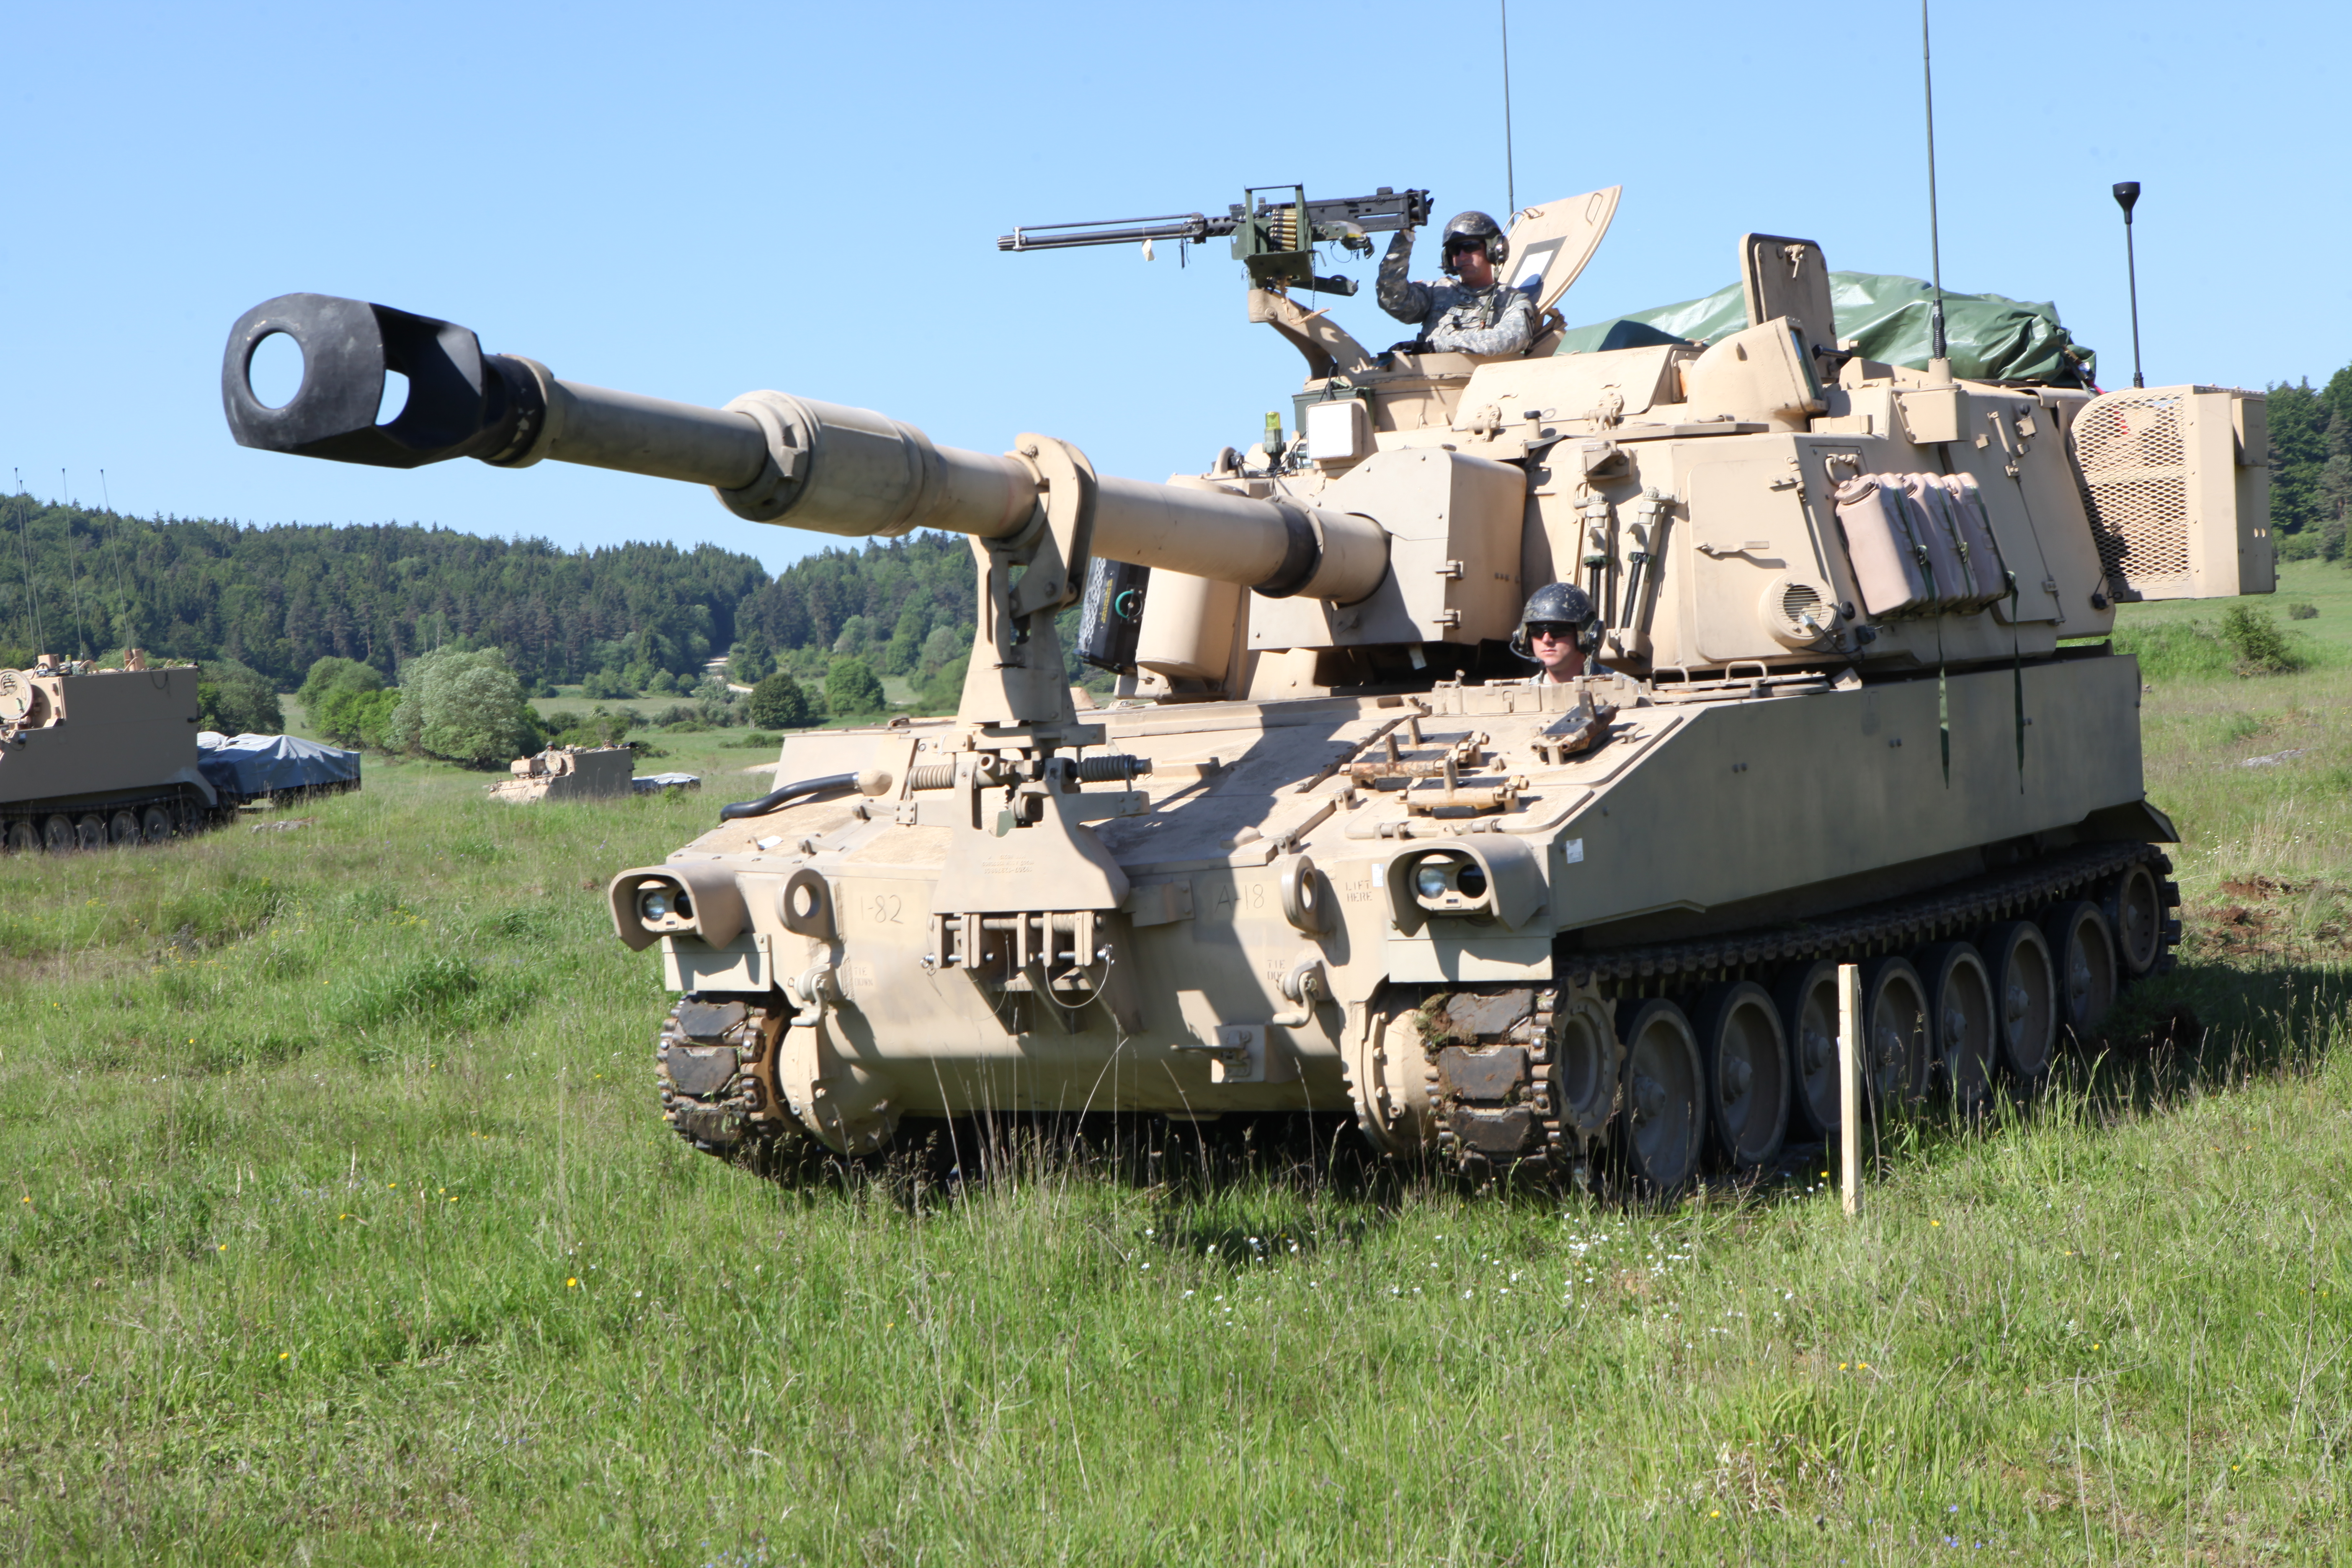 The American Paladin SPAAG has a large 155mm howitzer with a prominent muzzle brake. The large turret and gun fastening clamp are SPG features.